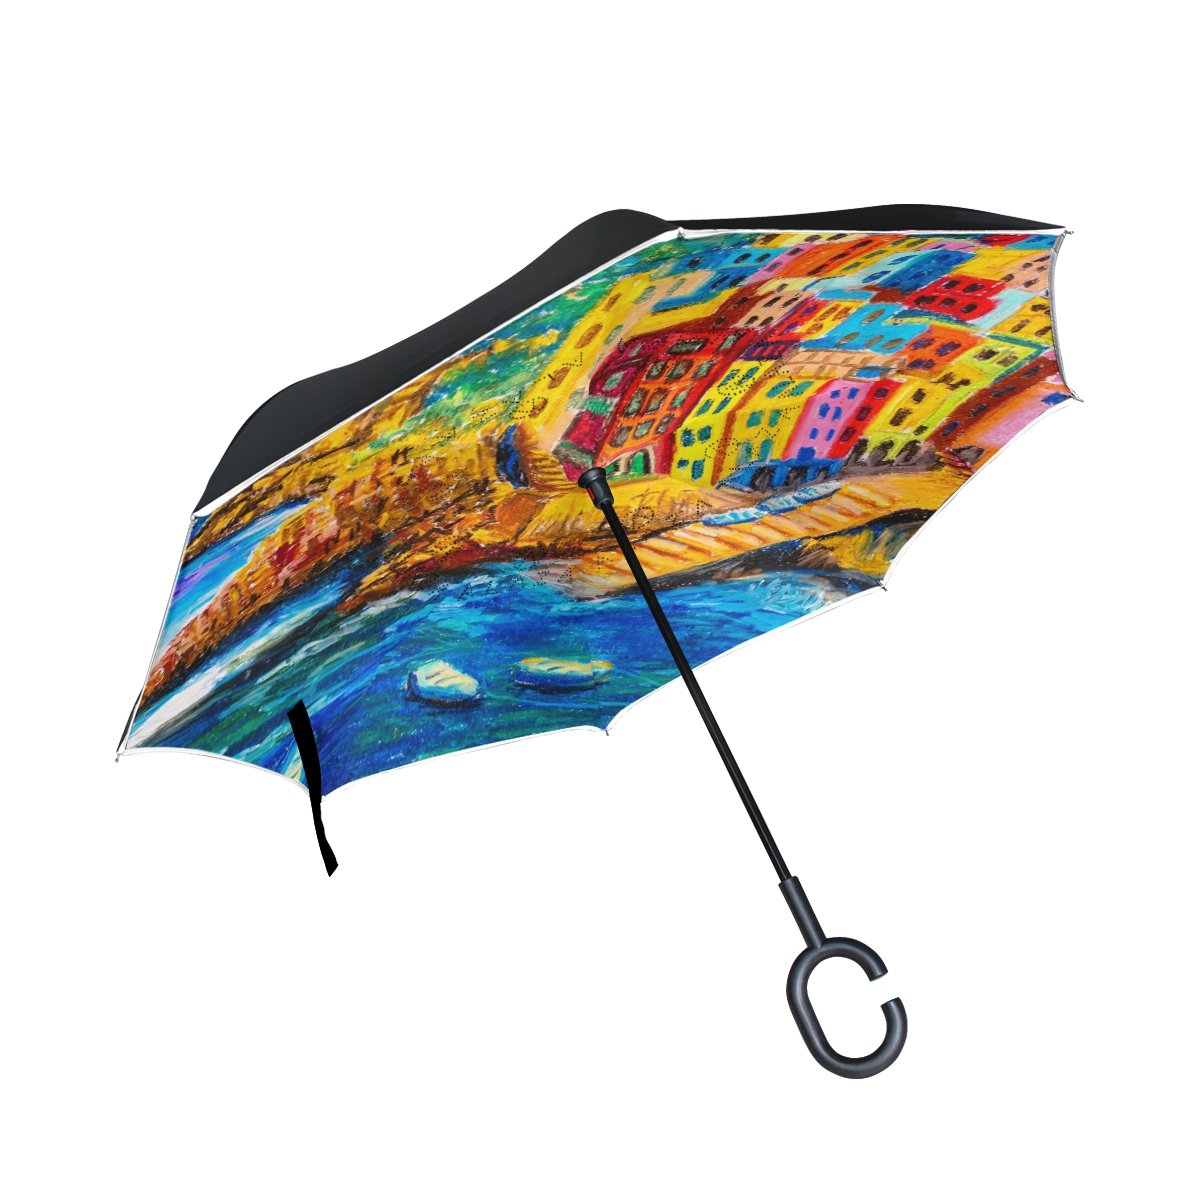 My Daily Double Layer Inverted Umbrella Cars Reverse Umbrella Italy House Boat Sea Oil Painting Windproof UV Proof Travel Outdoor Umbrella